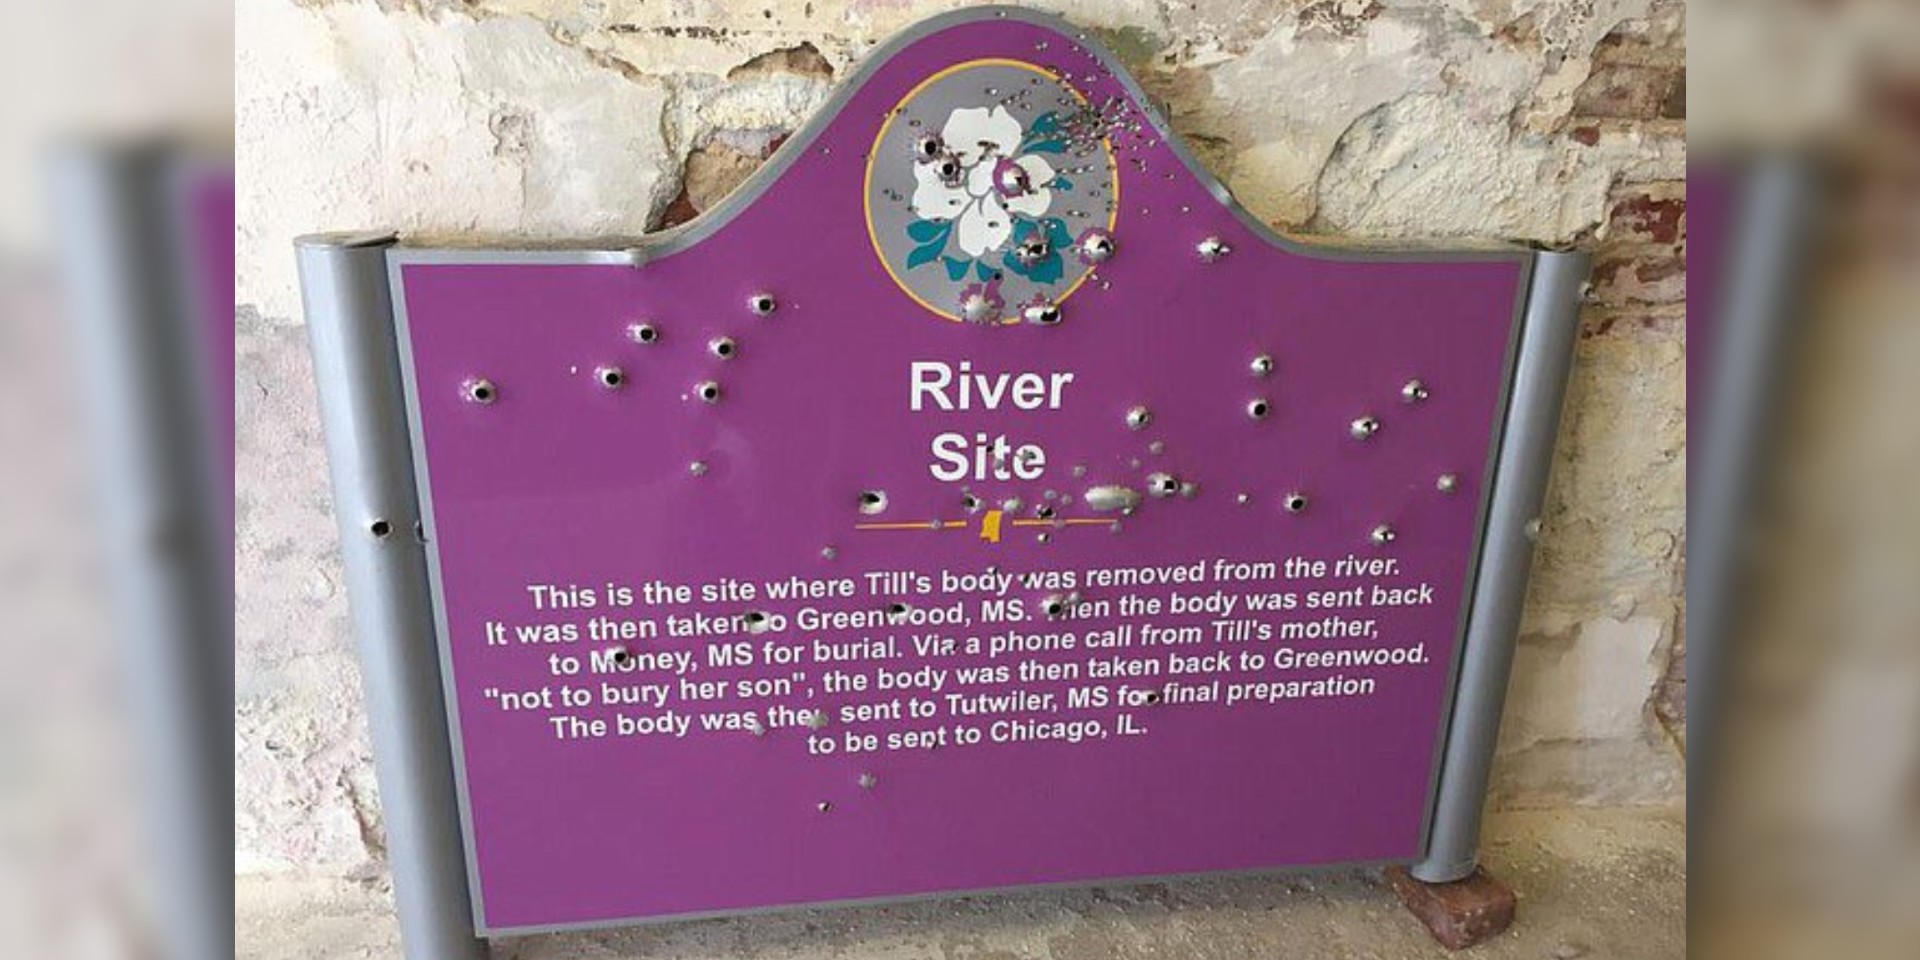 A memorial for Emmett Till shows bullet holes